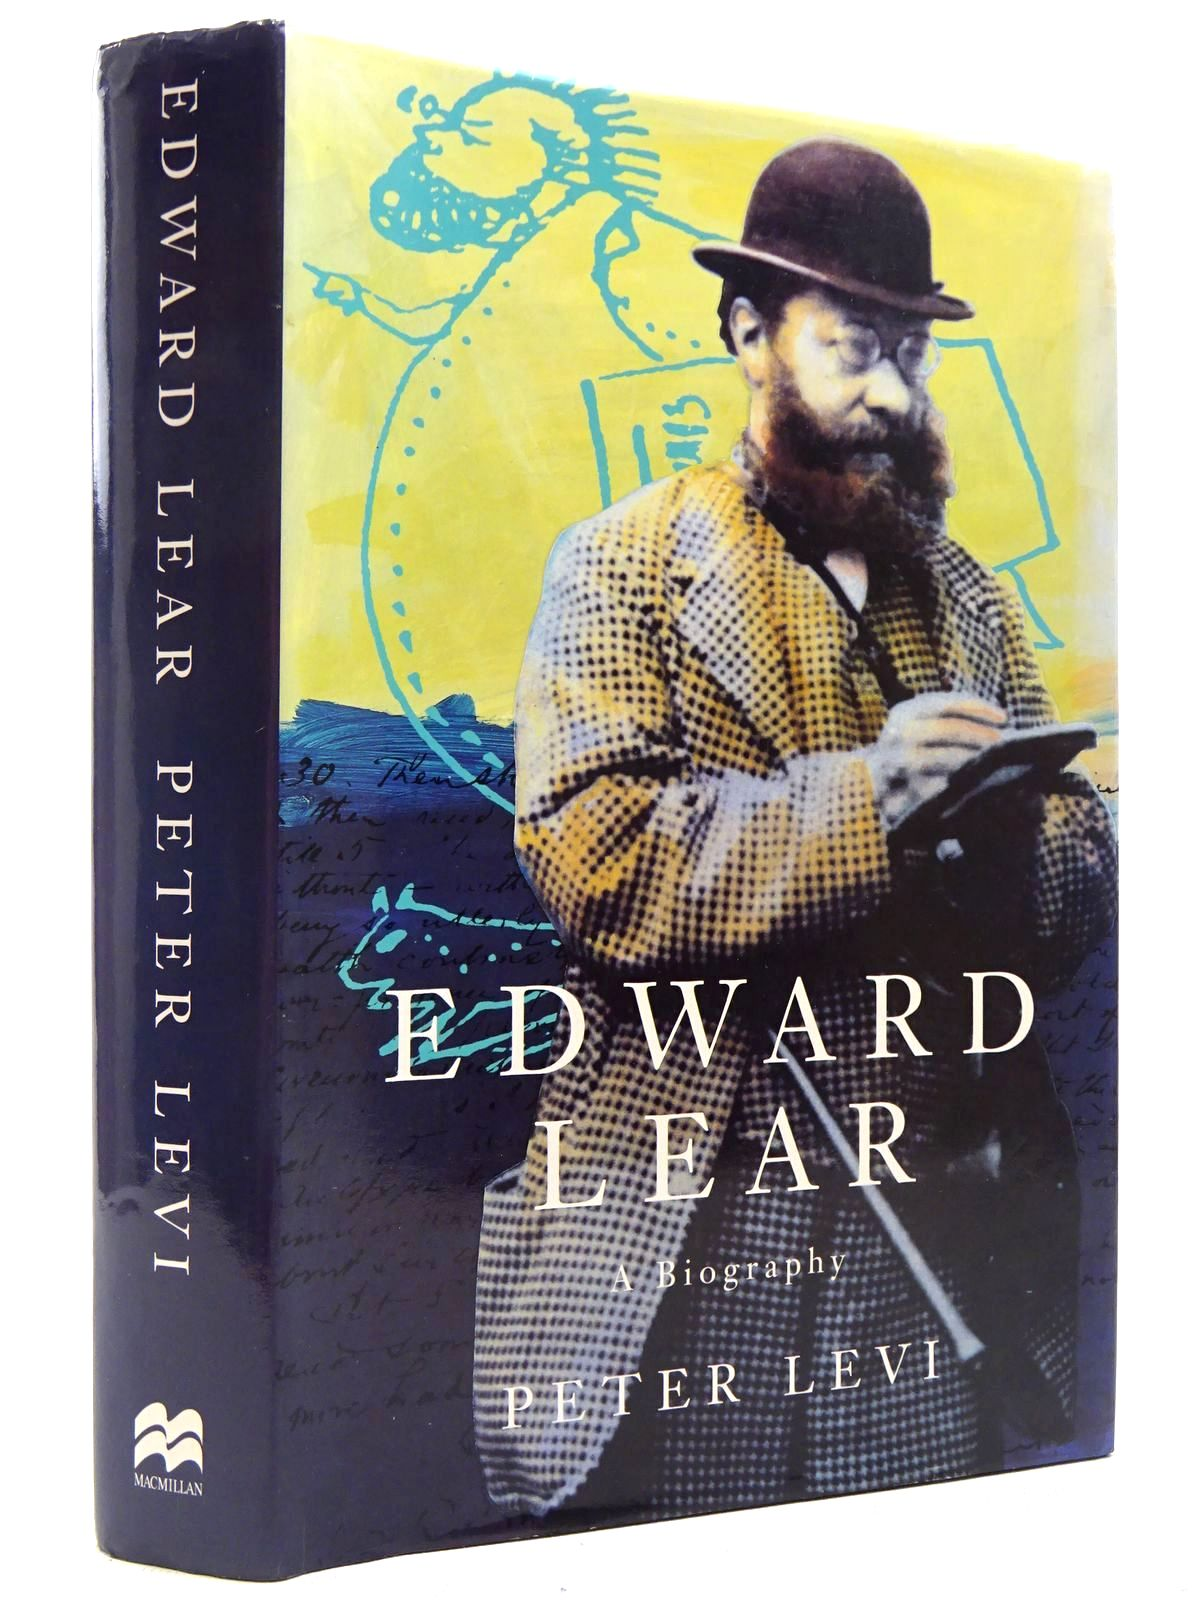 Photo of EDWARD LEAR A BIOGRAPHY written by Levi, Peter published by MacMillan (STOCK CODE: 2129115)  for sale by Stella & Rose's Books